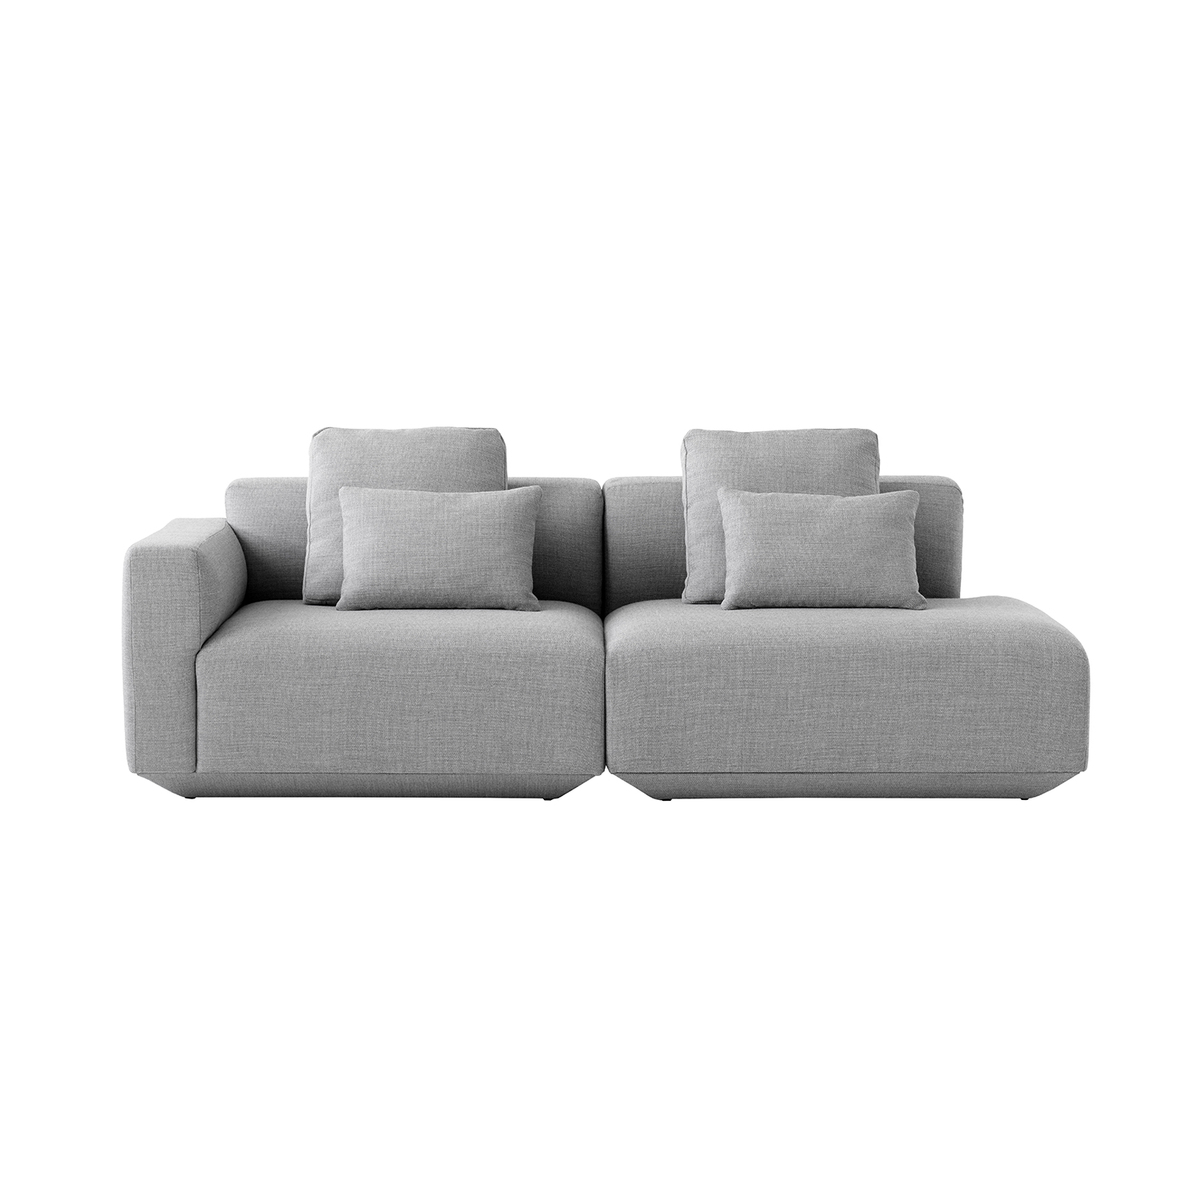 &Tradition Develius G modular sofa with cushions, Fiord 151 from &Tradition